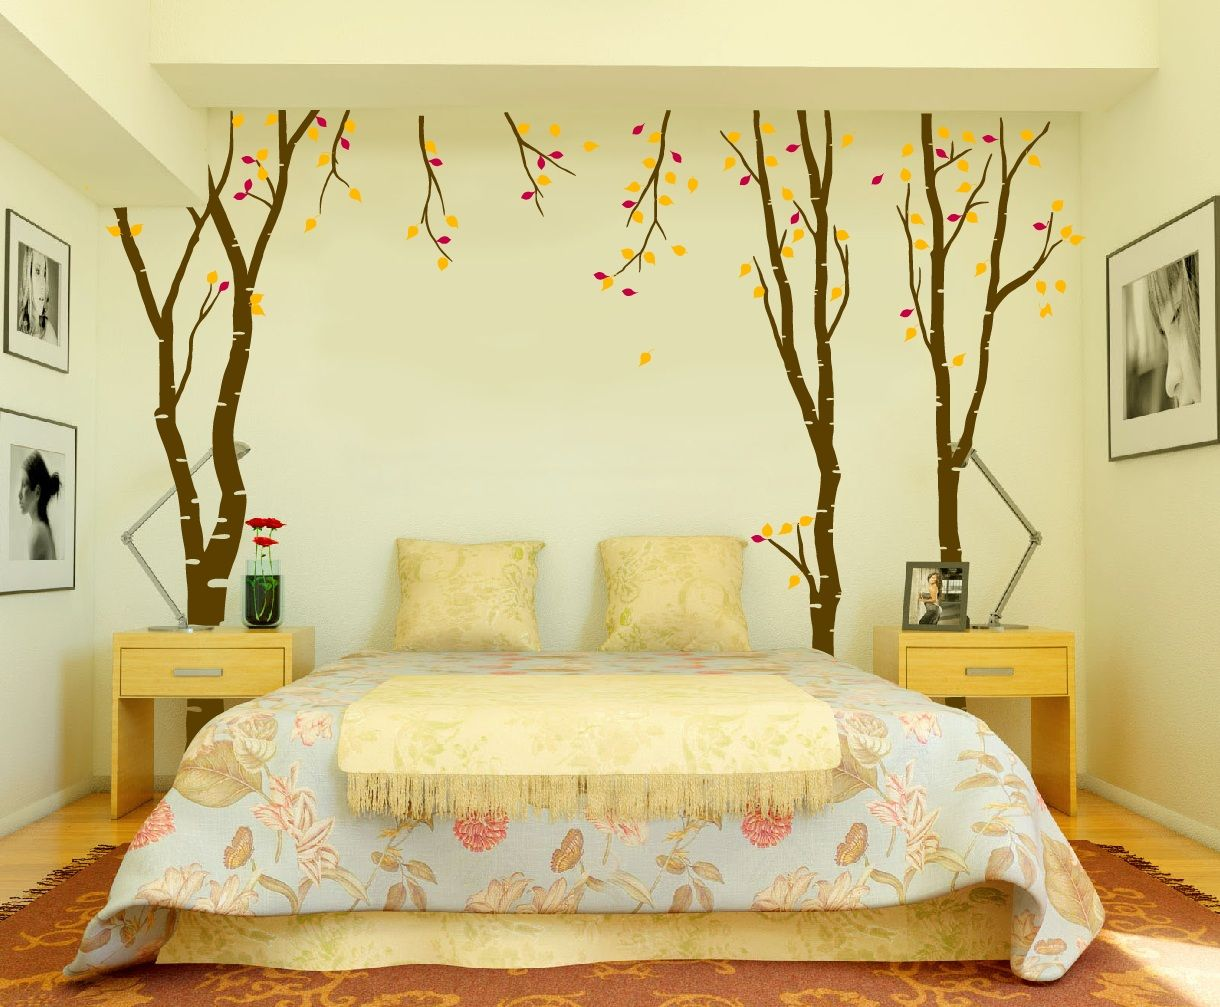 Small Teen Room Decoration Ideas | Bedroom | Pinterest | Birch, Wall ...